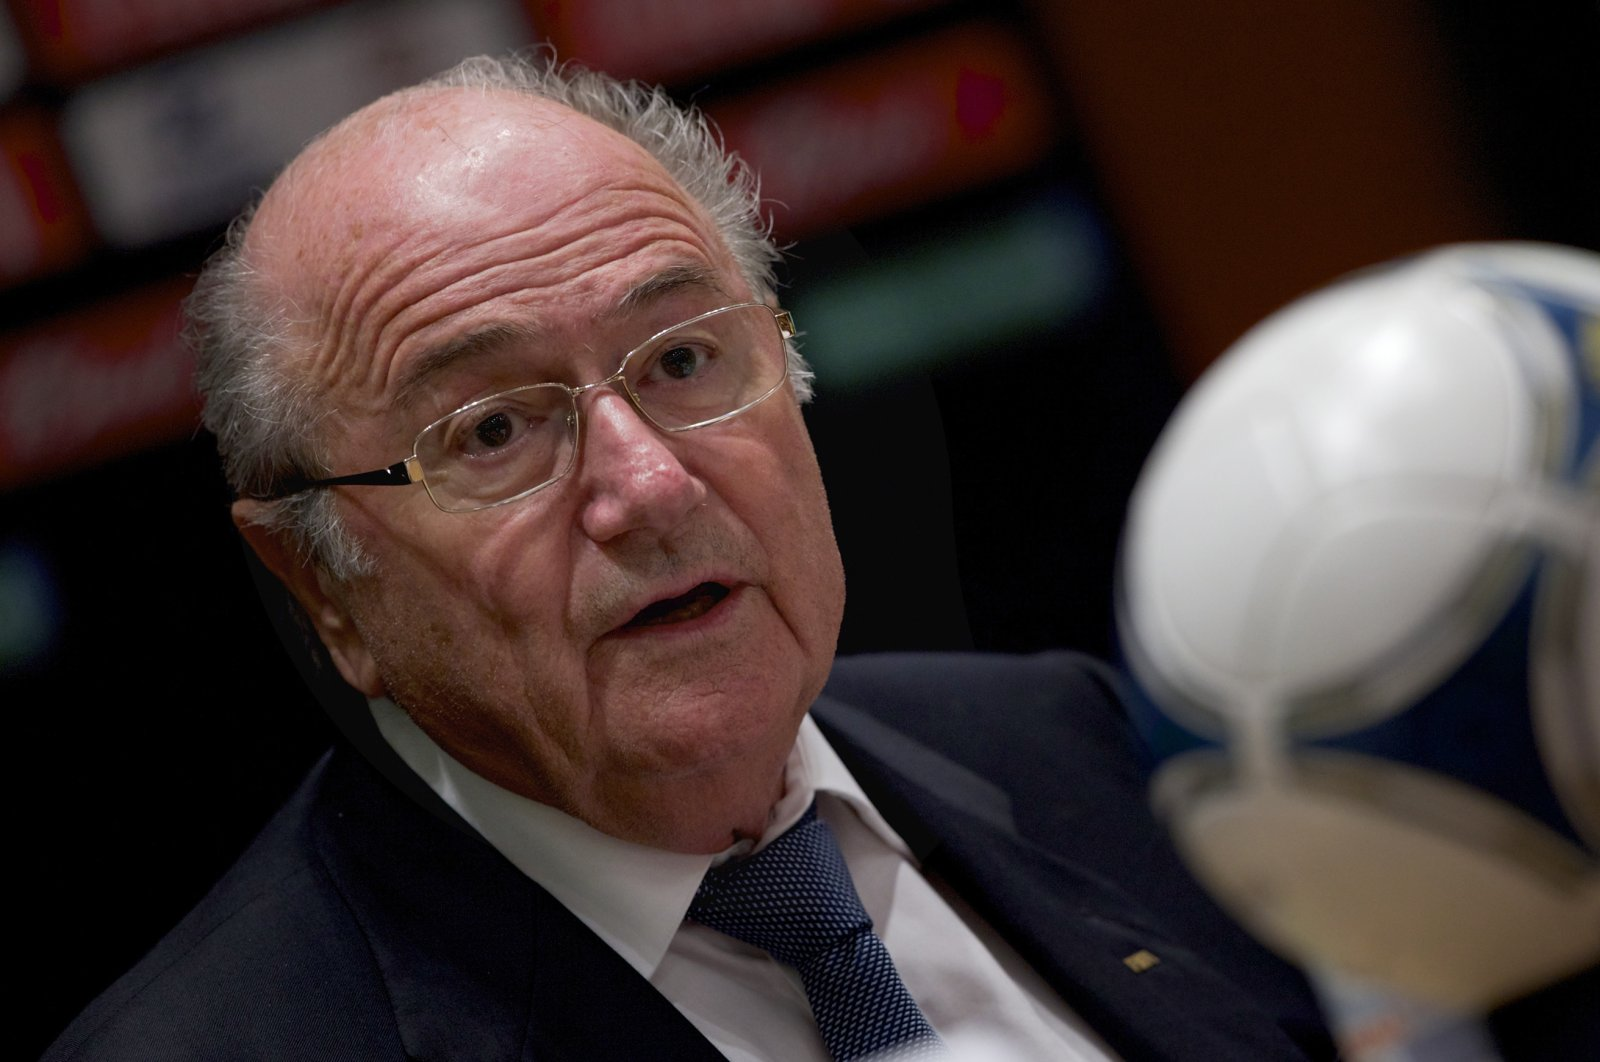 Former FIFA president Sepp Blatter speaks during a conference in Moscow, Russia, Sept. 30, 2012. (AP Photo)